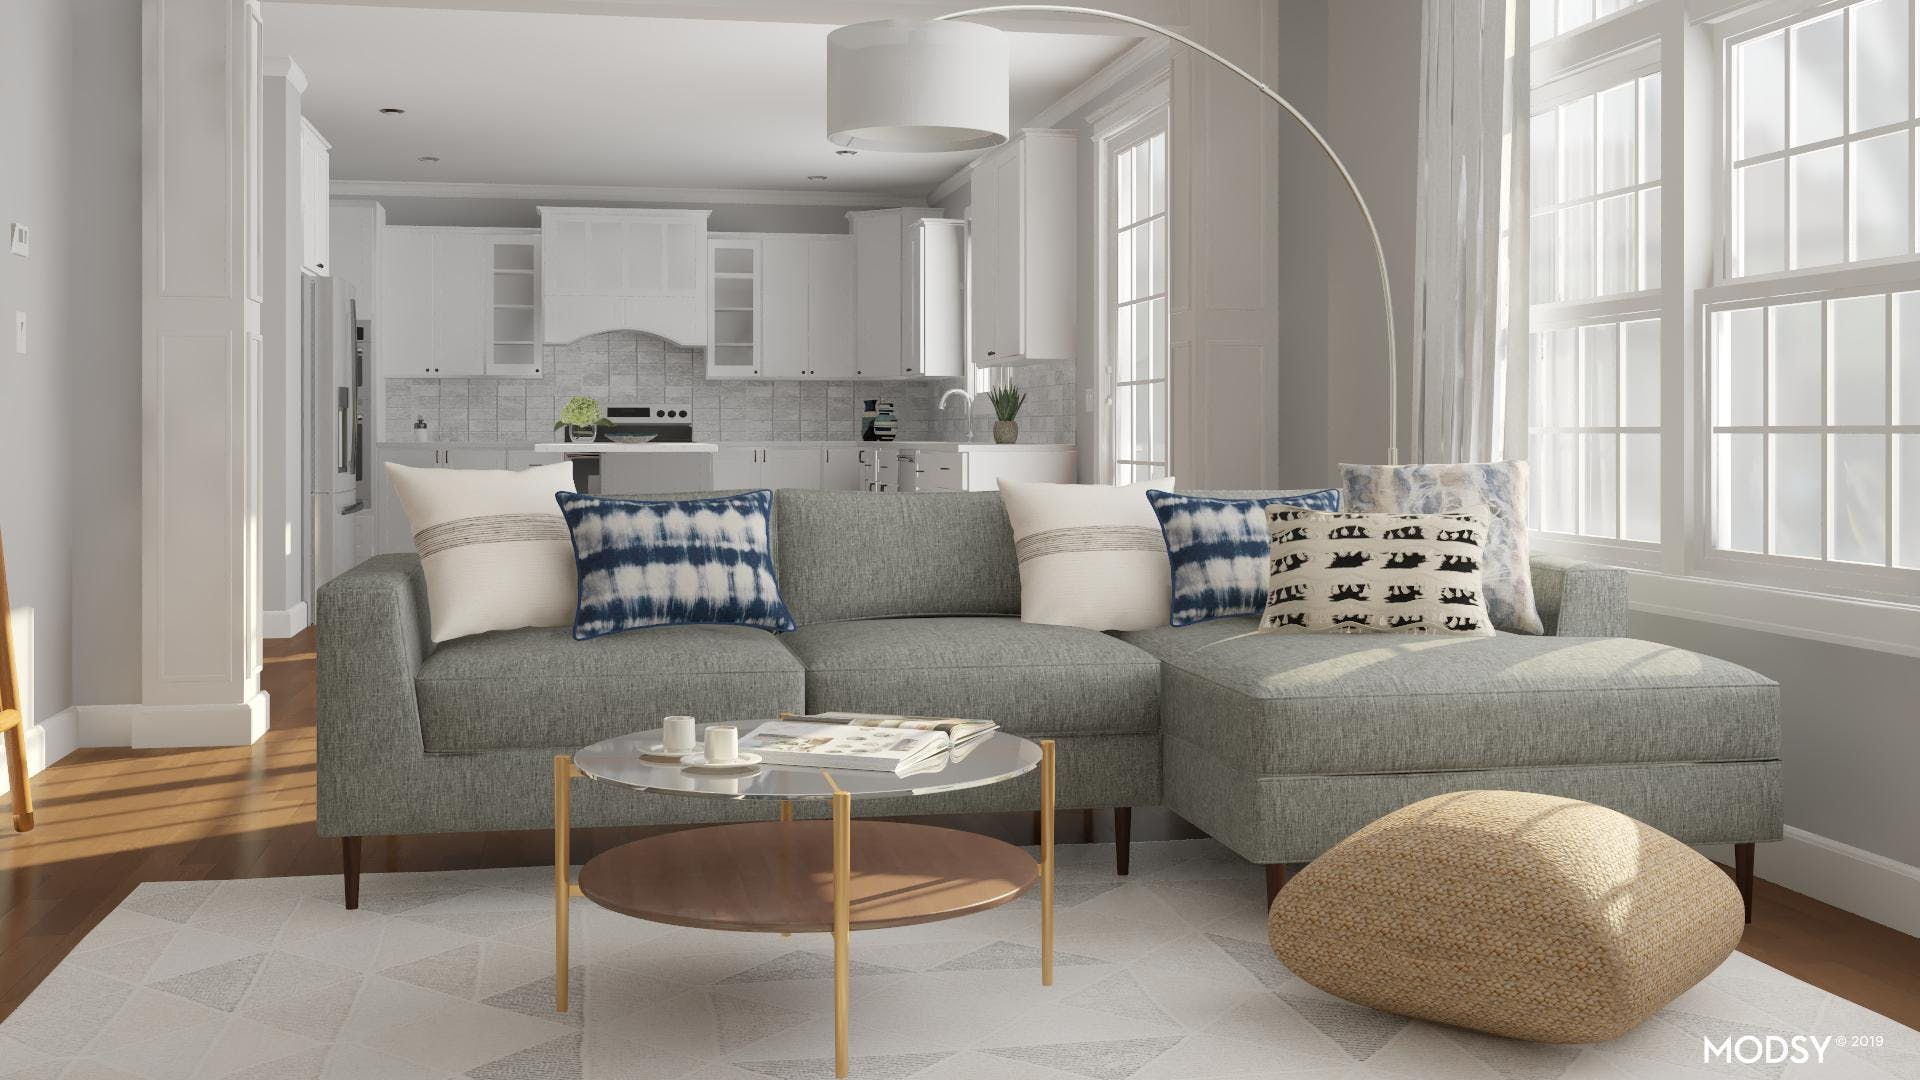 Stylish Seating For All